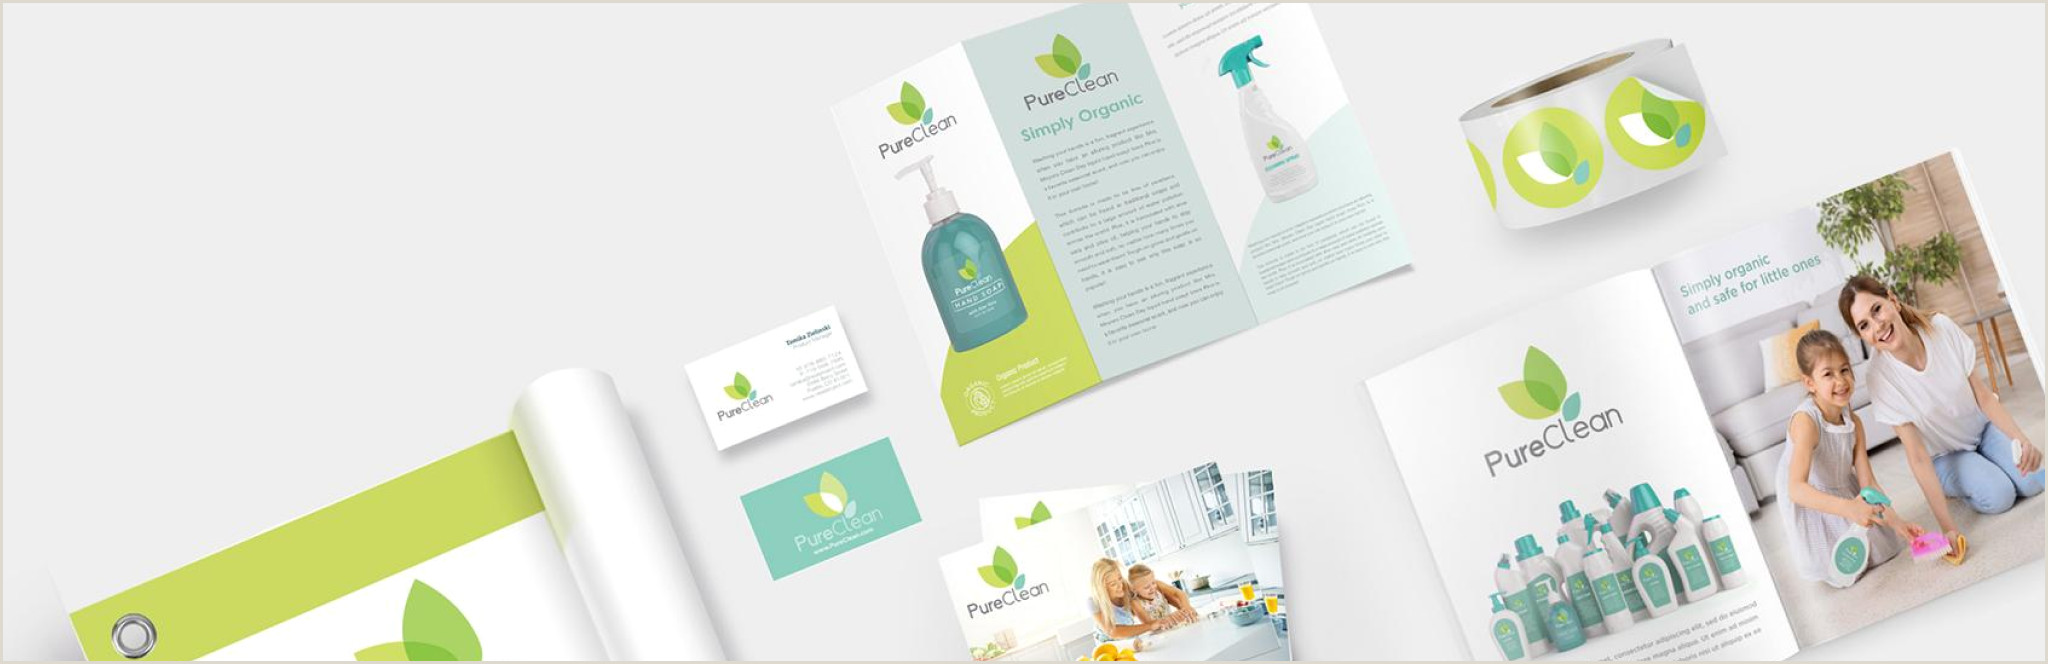 Best Business Cards Deal 2020 Printplace High Quality Line Printing Services